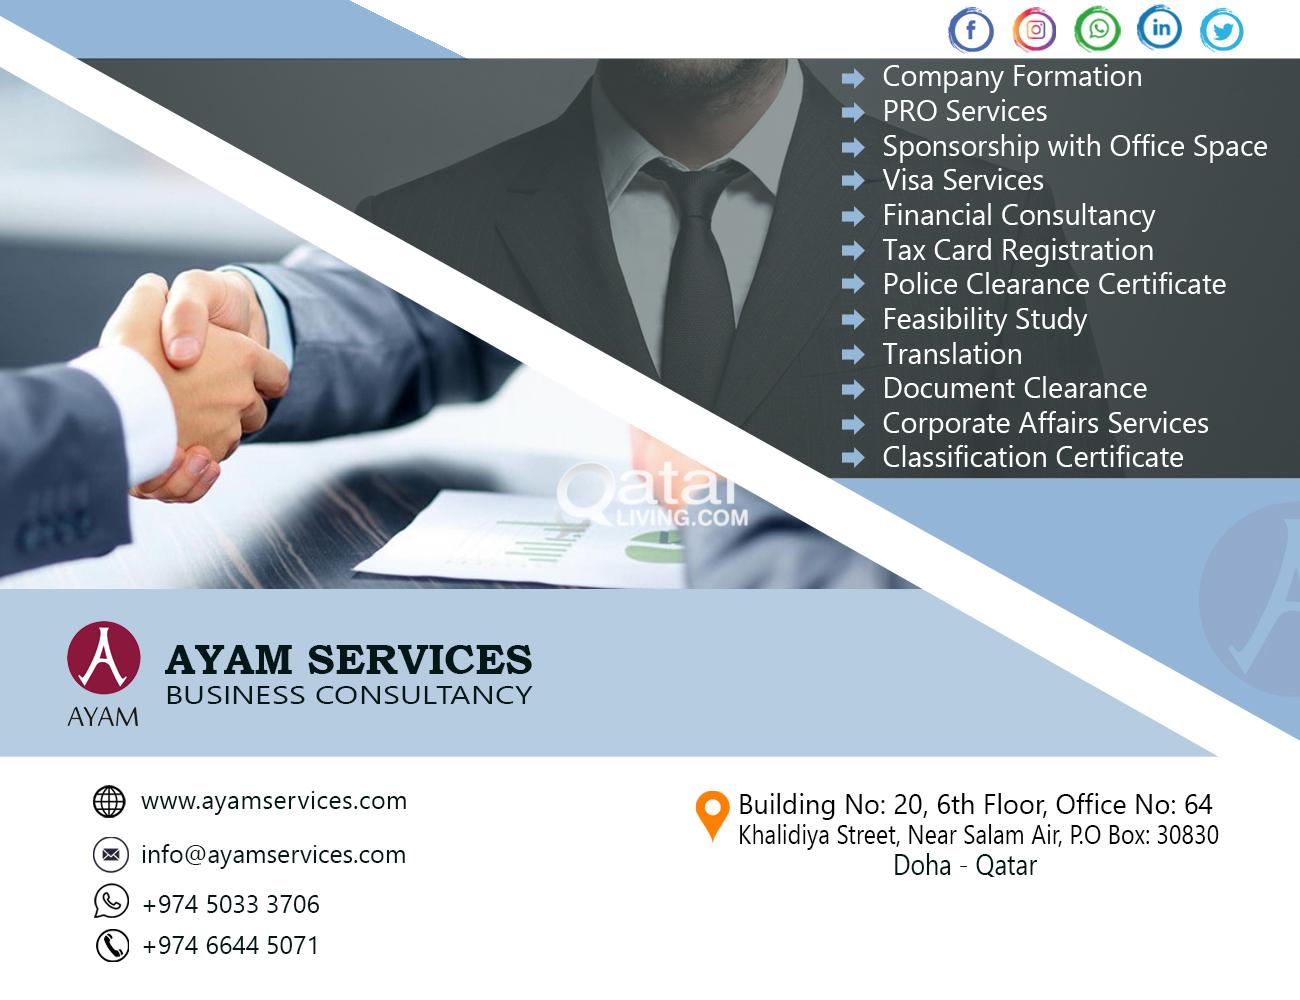 FOR STARTING A COMPANY IN QATAR - FORMATION